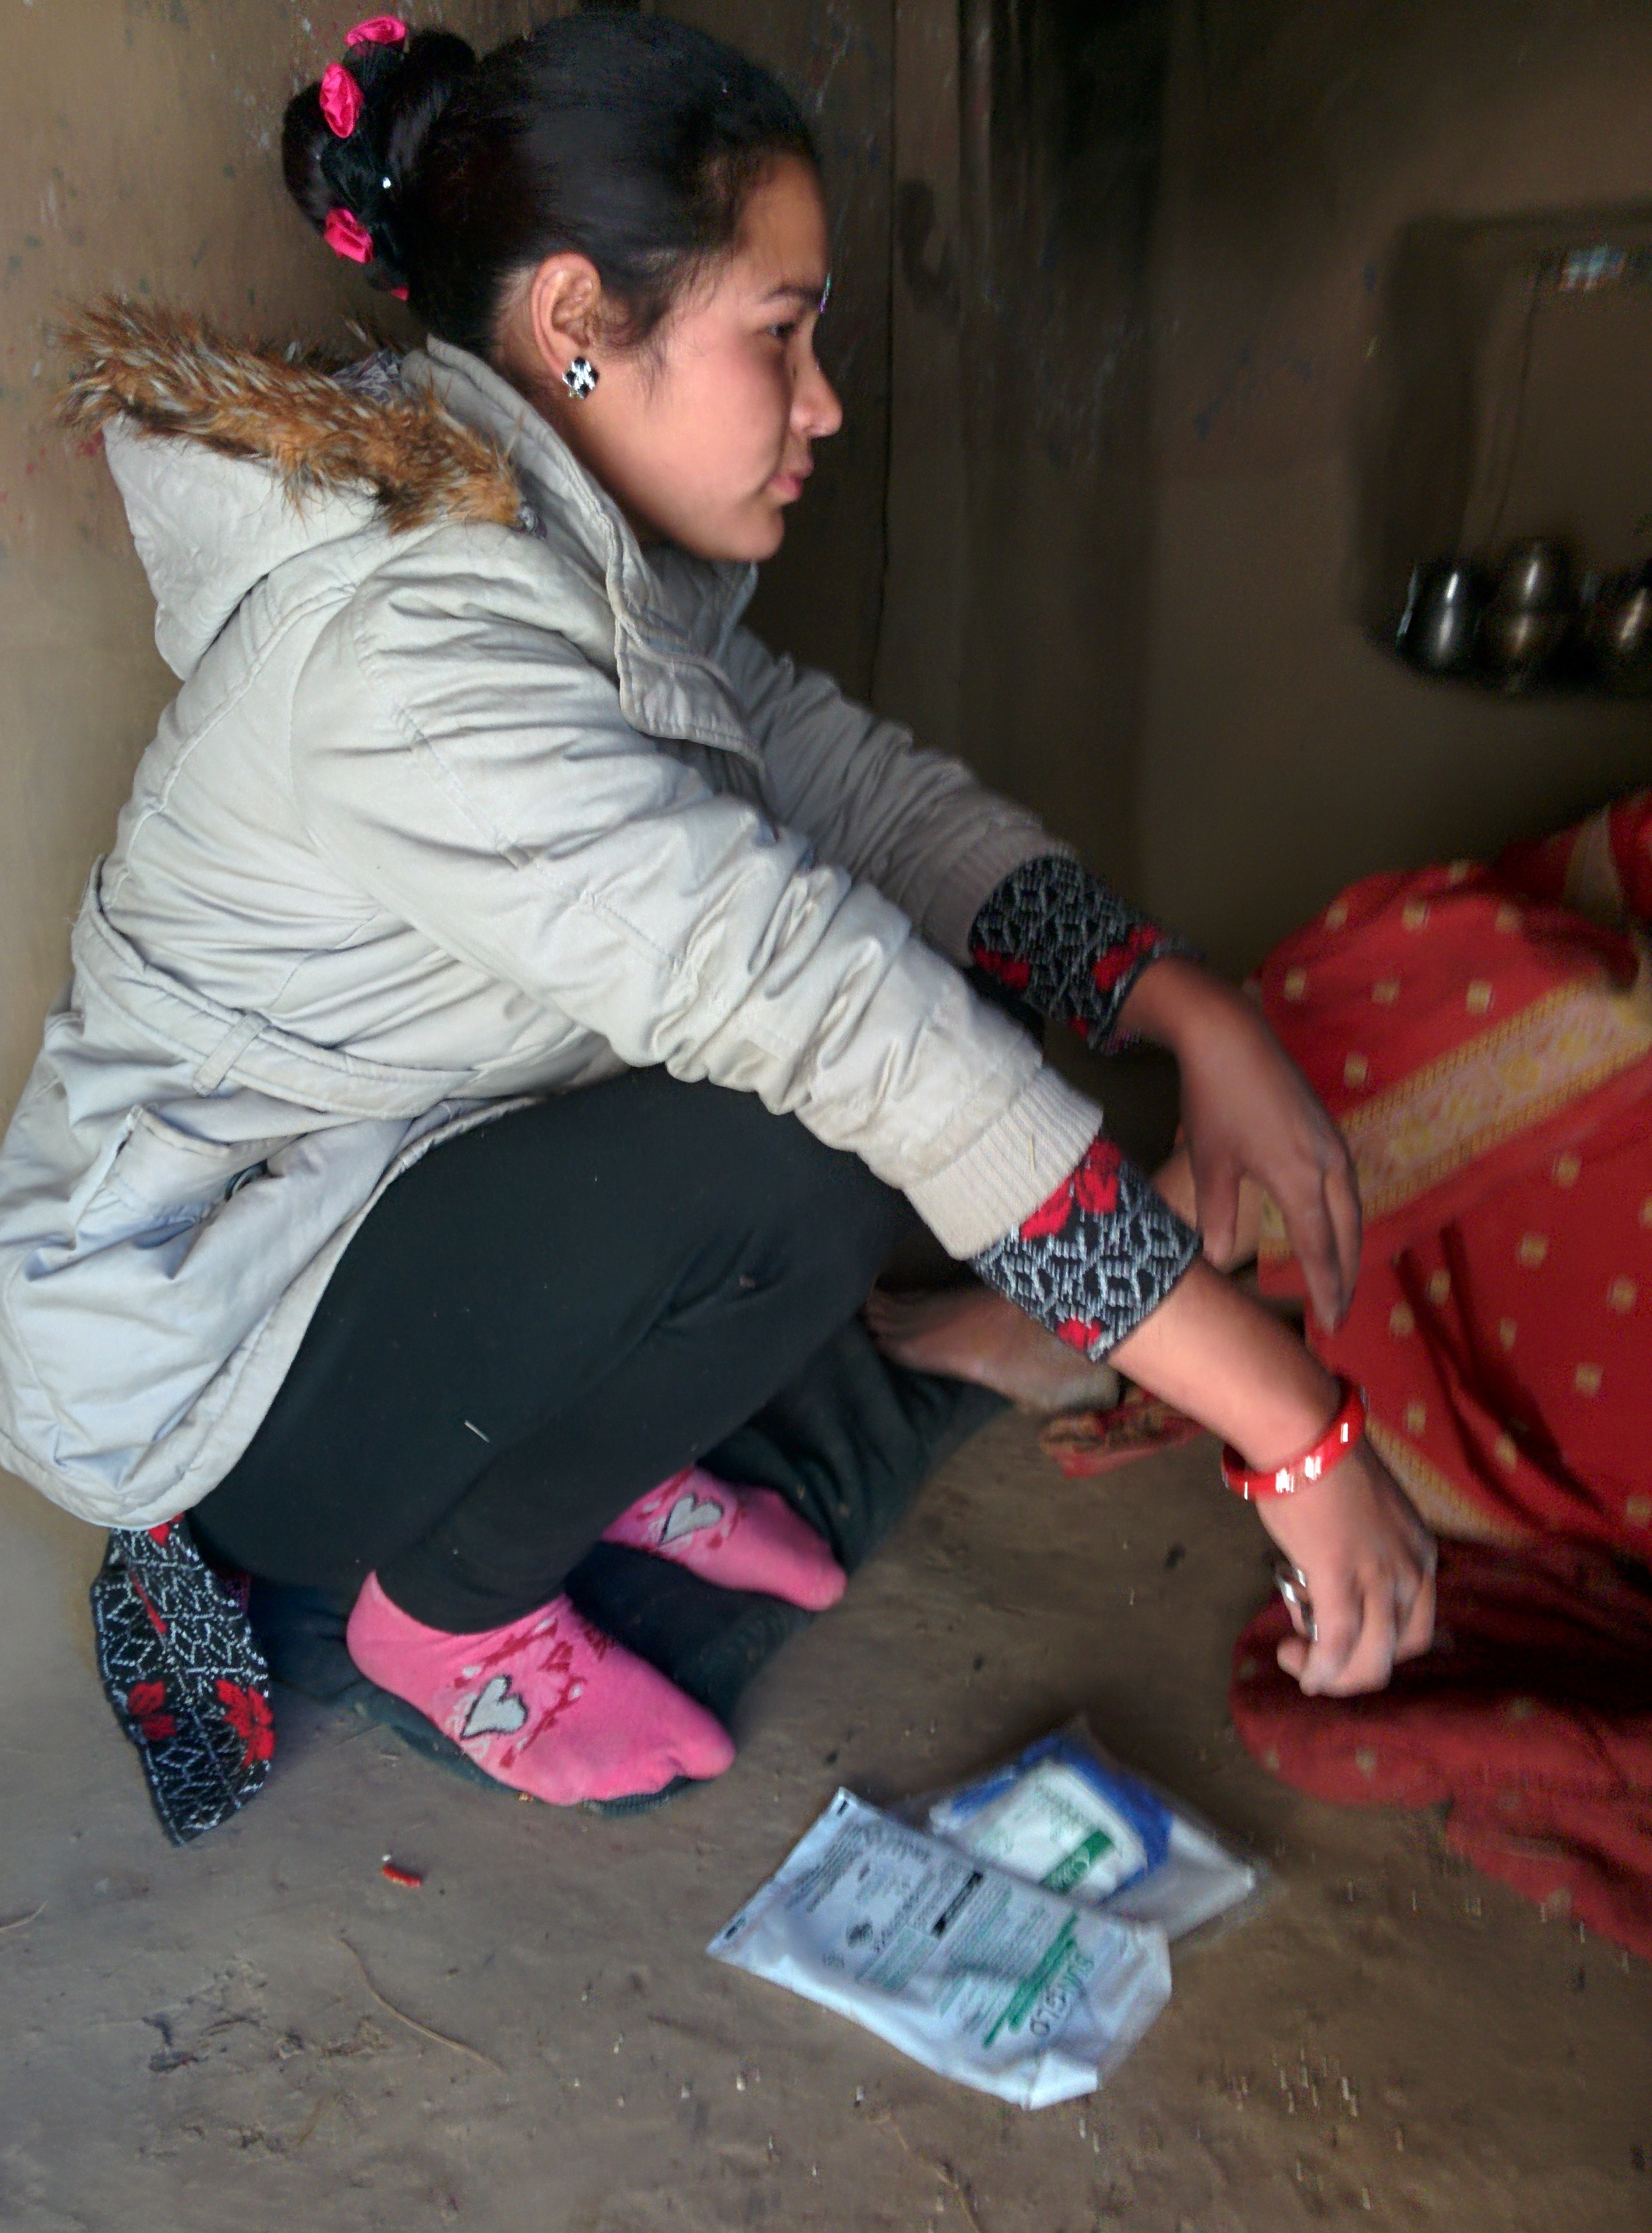 One of community health workers Sarita Singh making a home visit with a hygienic birth kit.